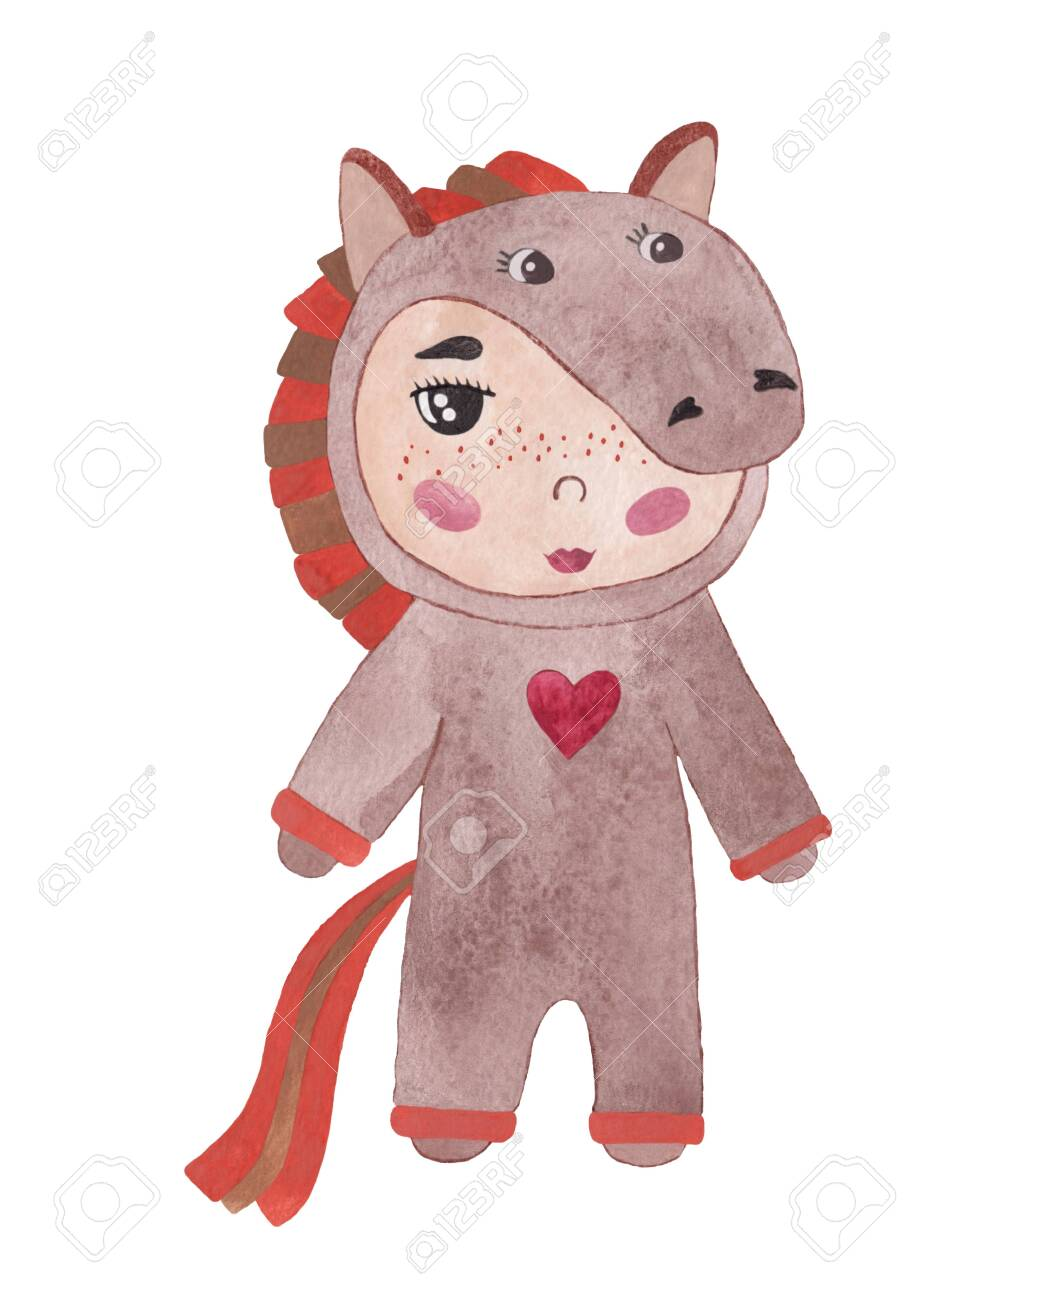 Watercolor Baby In A Horse Costume Cute Horse Child Party Symbol Stock Photo Picture And Royalty Free Image Image 138794723